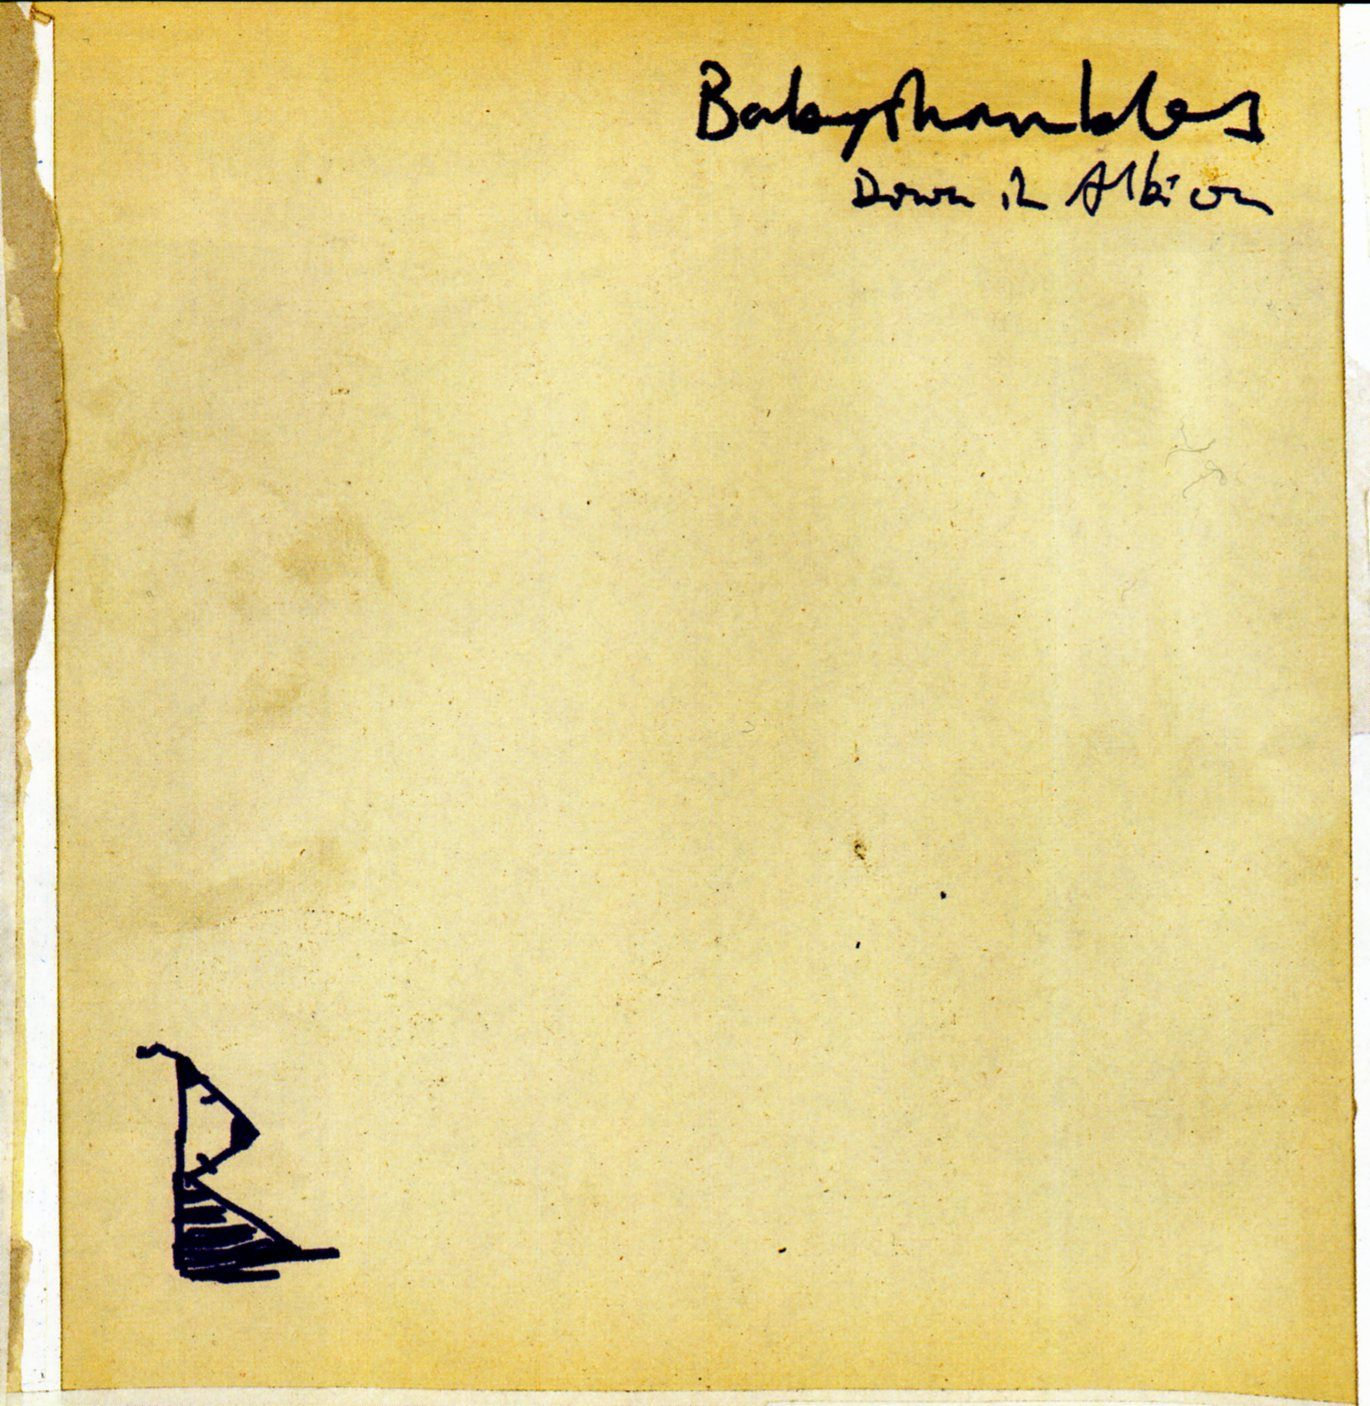 Babyshambles - Down In Albion album cover